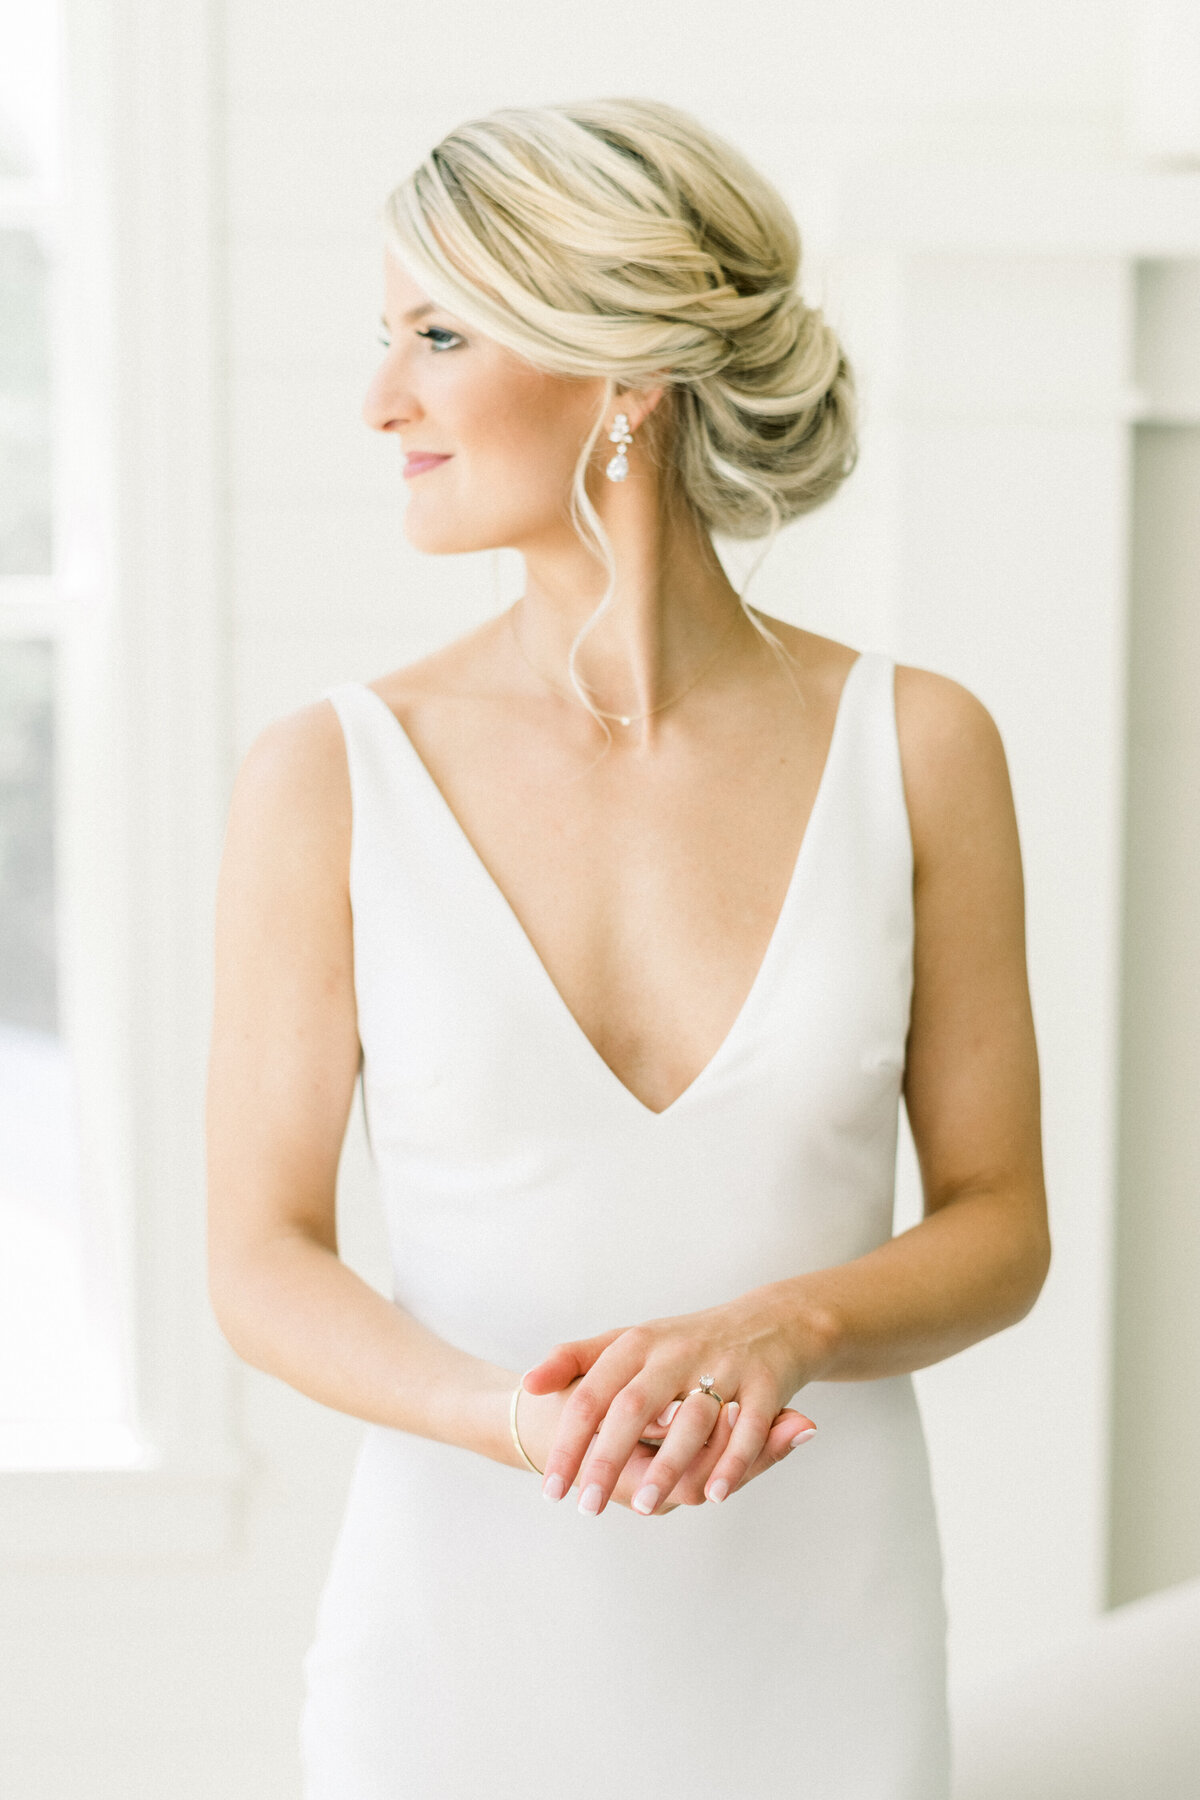 Minnesota wedding photographer, Minneapolis wedding photographer, Minnesota luxury photographer, minnesota light and airy photographer, minnesota light and airy wedding photographer, Trish allison wedding photography